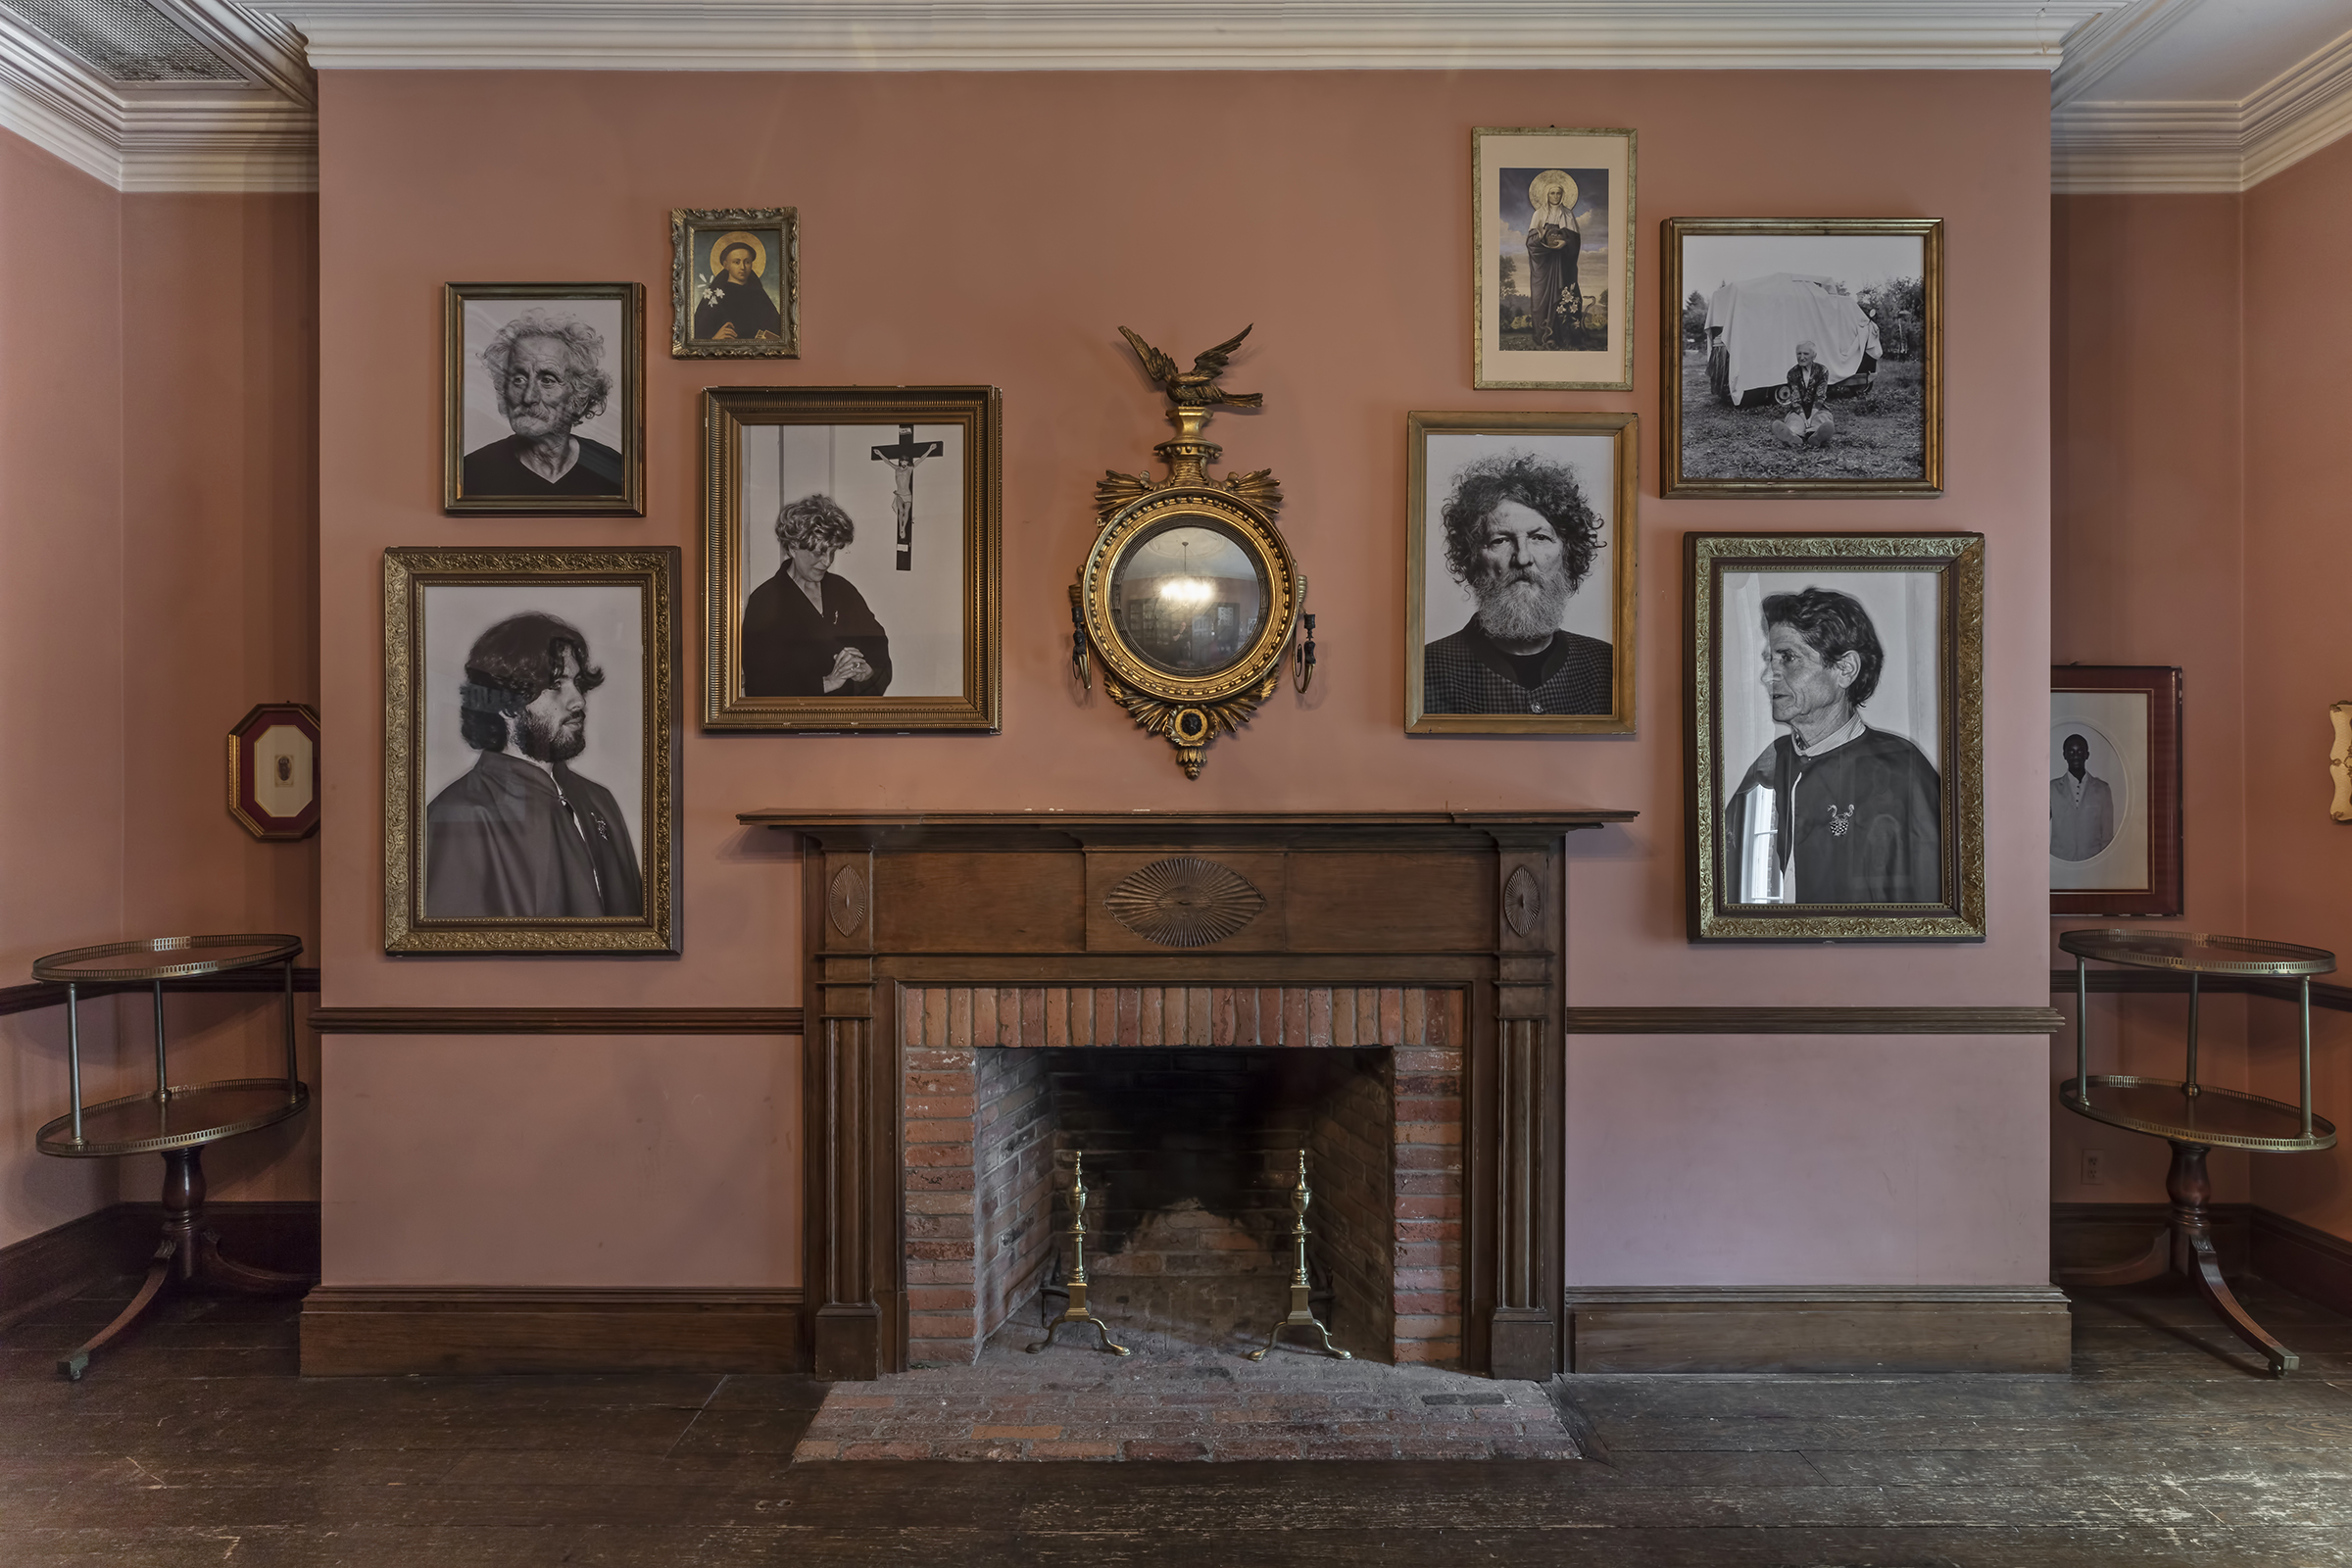 Piero Martinello, Radicalia, 2018. Installation at the Campbell House Museum. Photo by Toni Hafkenscheid.